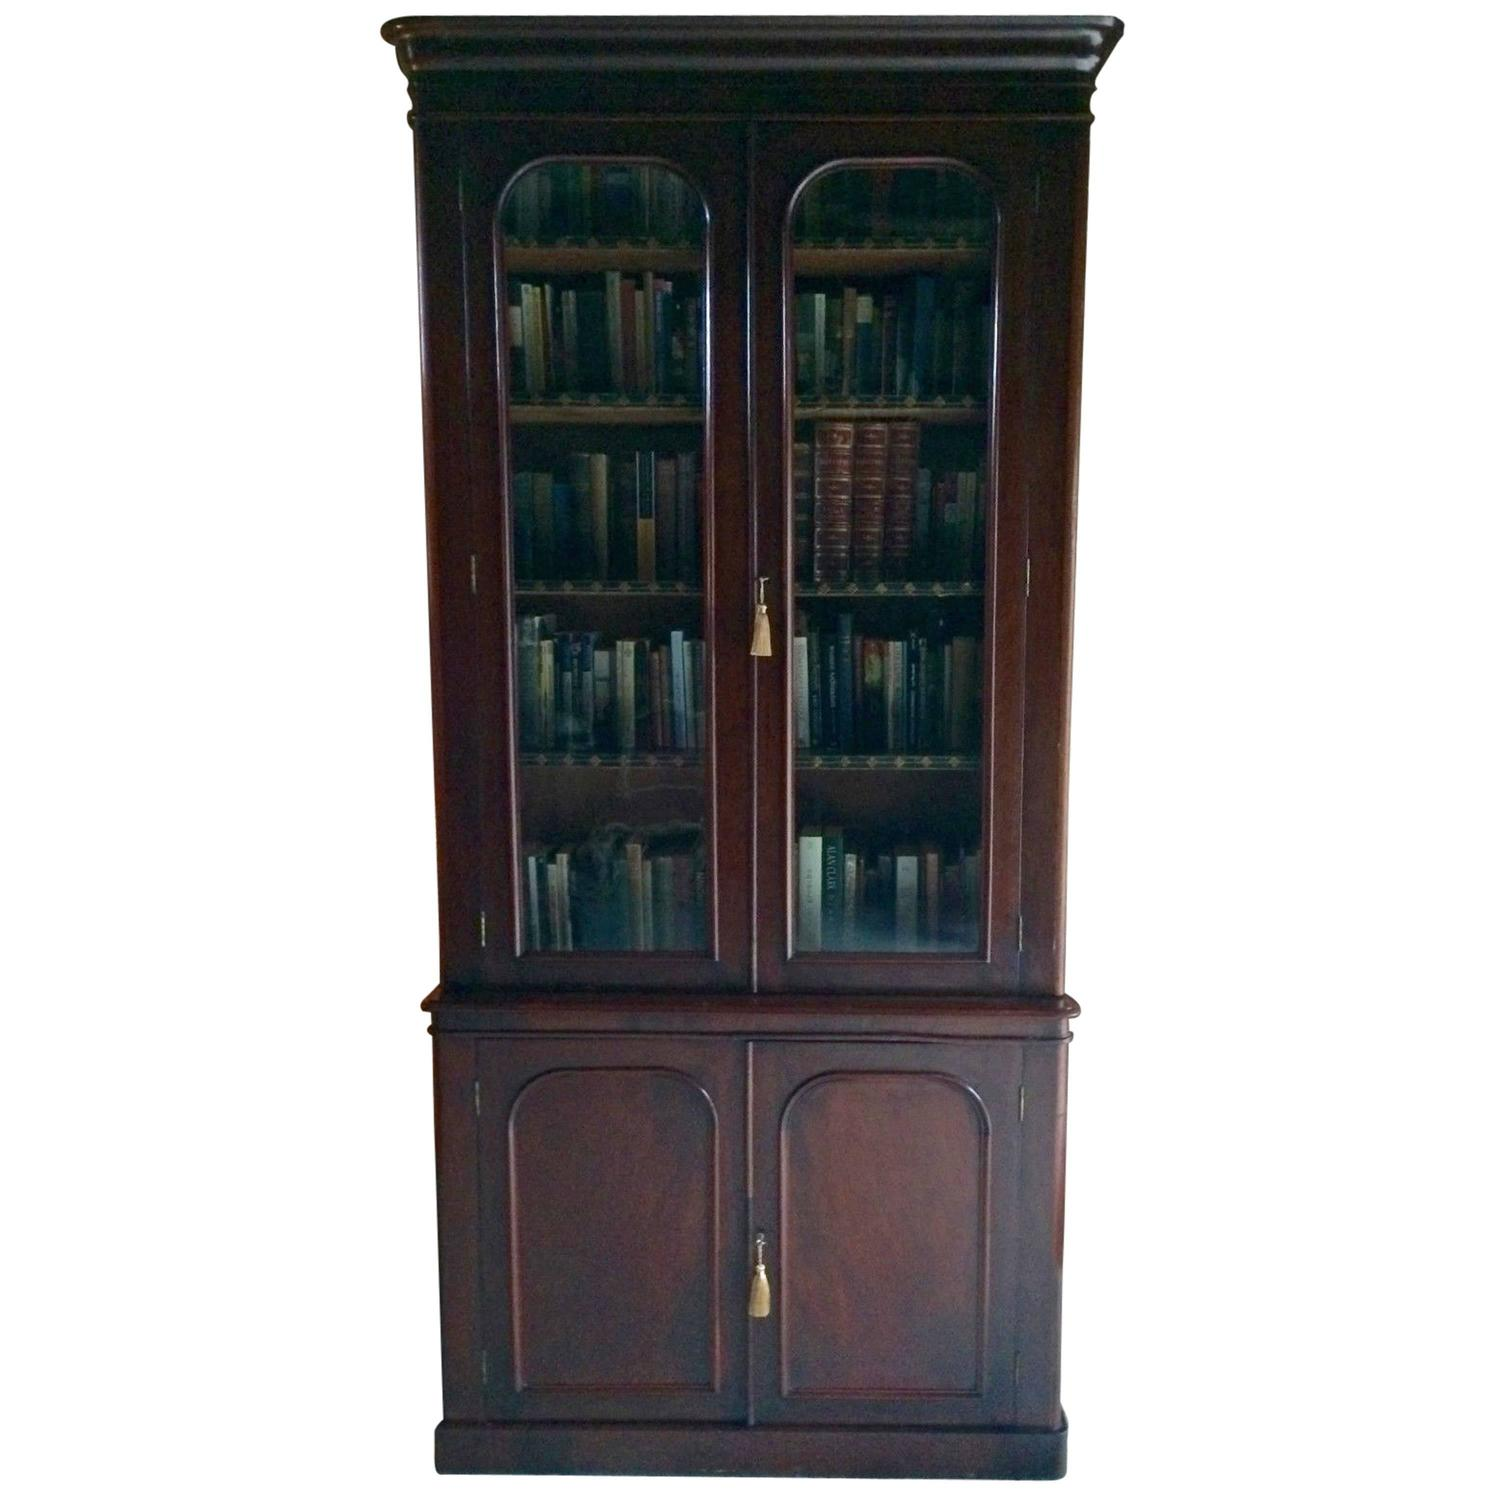 #776454 Antique Bookcase Display Cabinet Mahogany Two Door  with 1500x1500 px of Recommended Mahogany Display Cabinets With Glass Doors 15001500 save image @ avoidforclosure.info